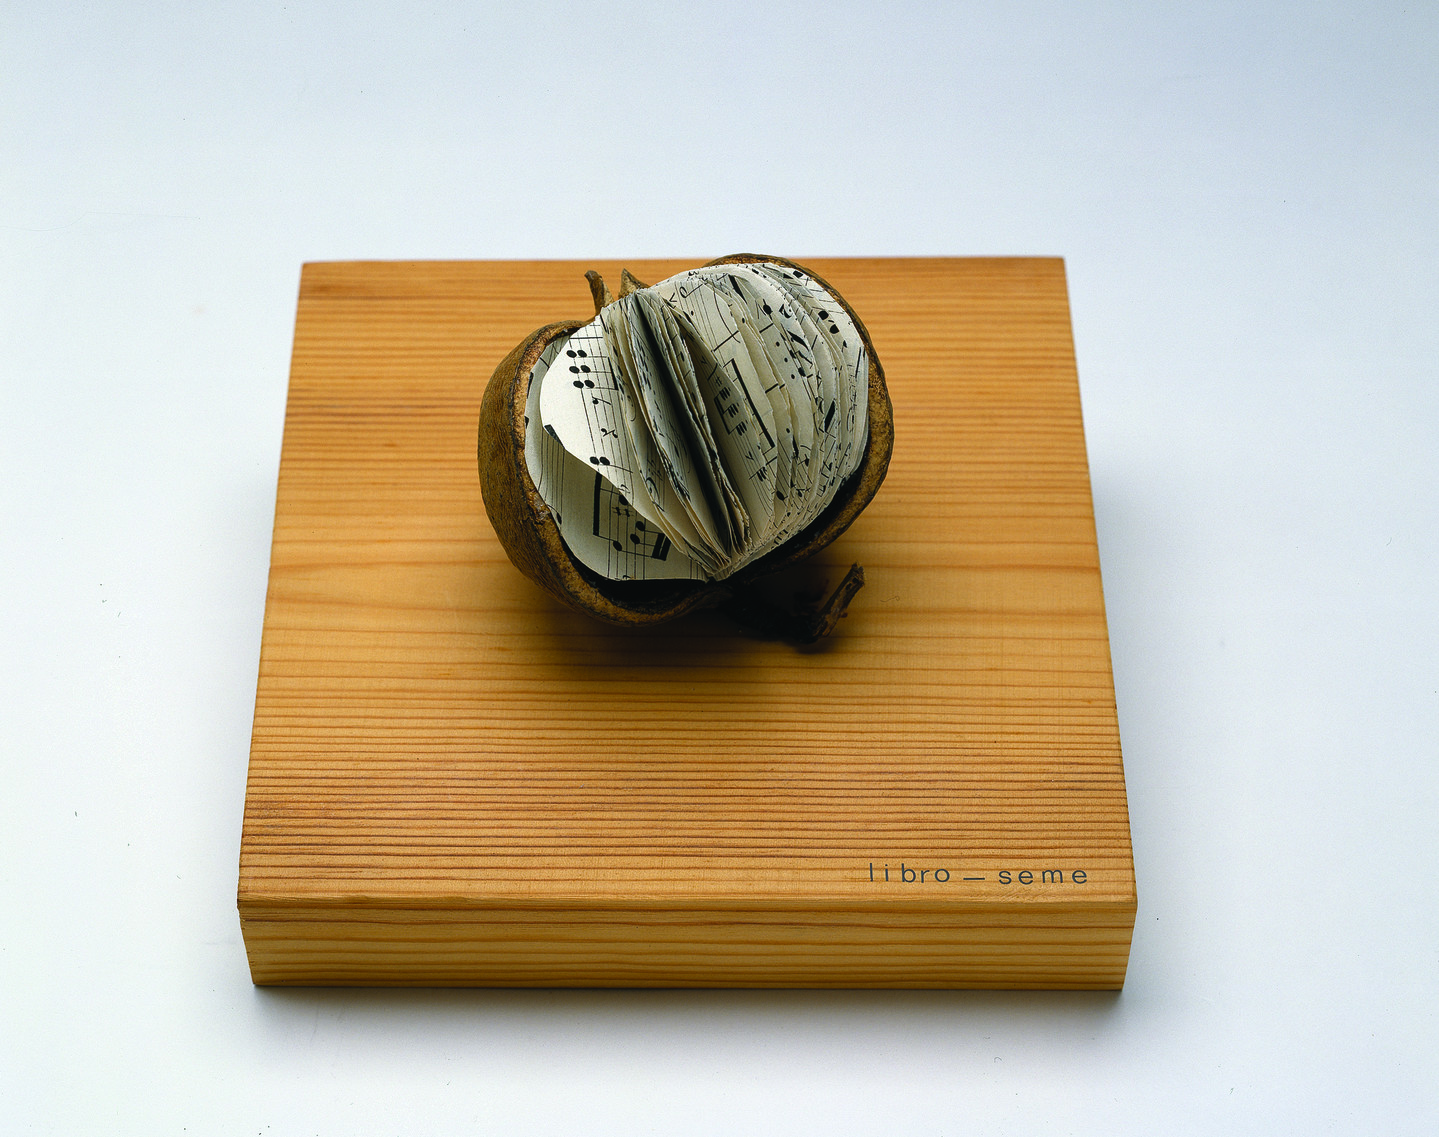 The small seed of a tropical fruit sits on top of a square wooden base that reads Libro-Seme. Inside the seed are cut sheets of music filling the seed like a book.